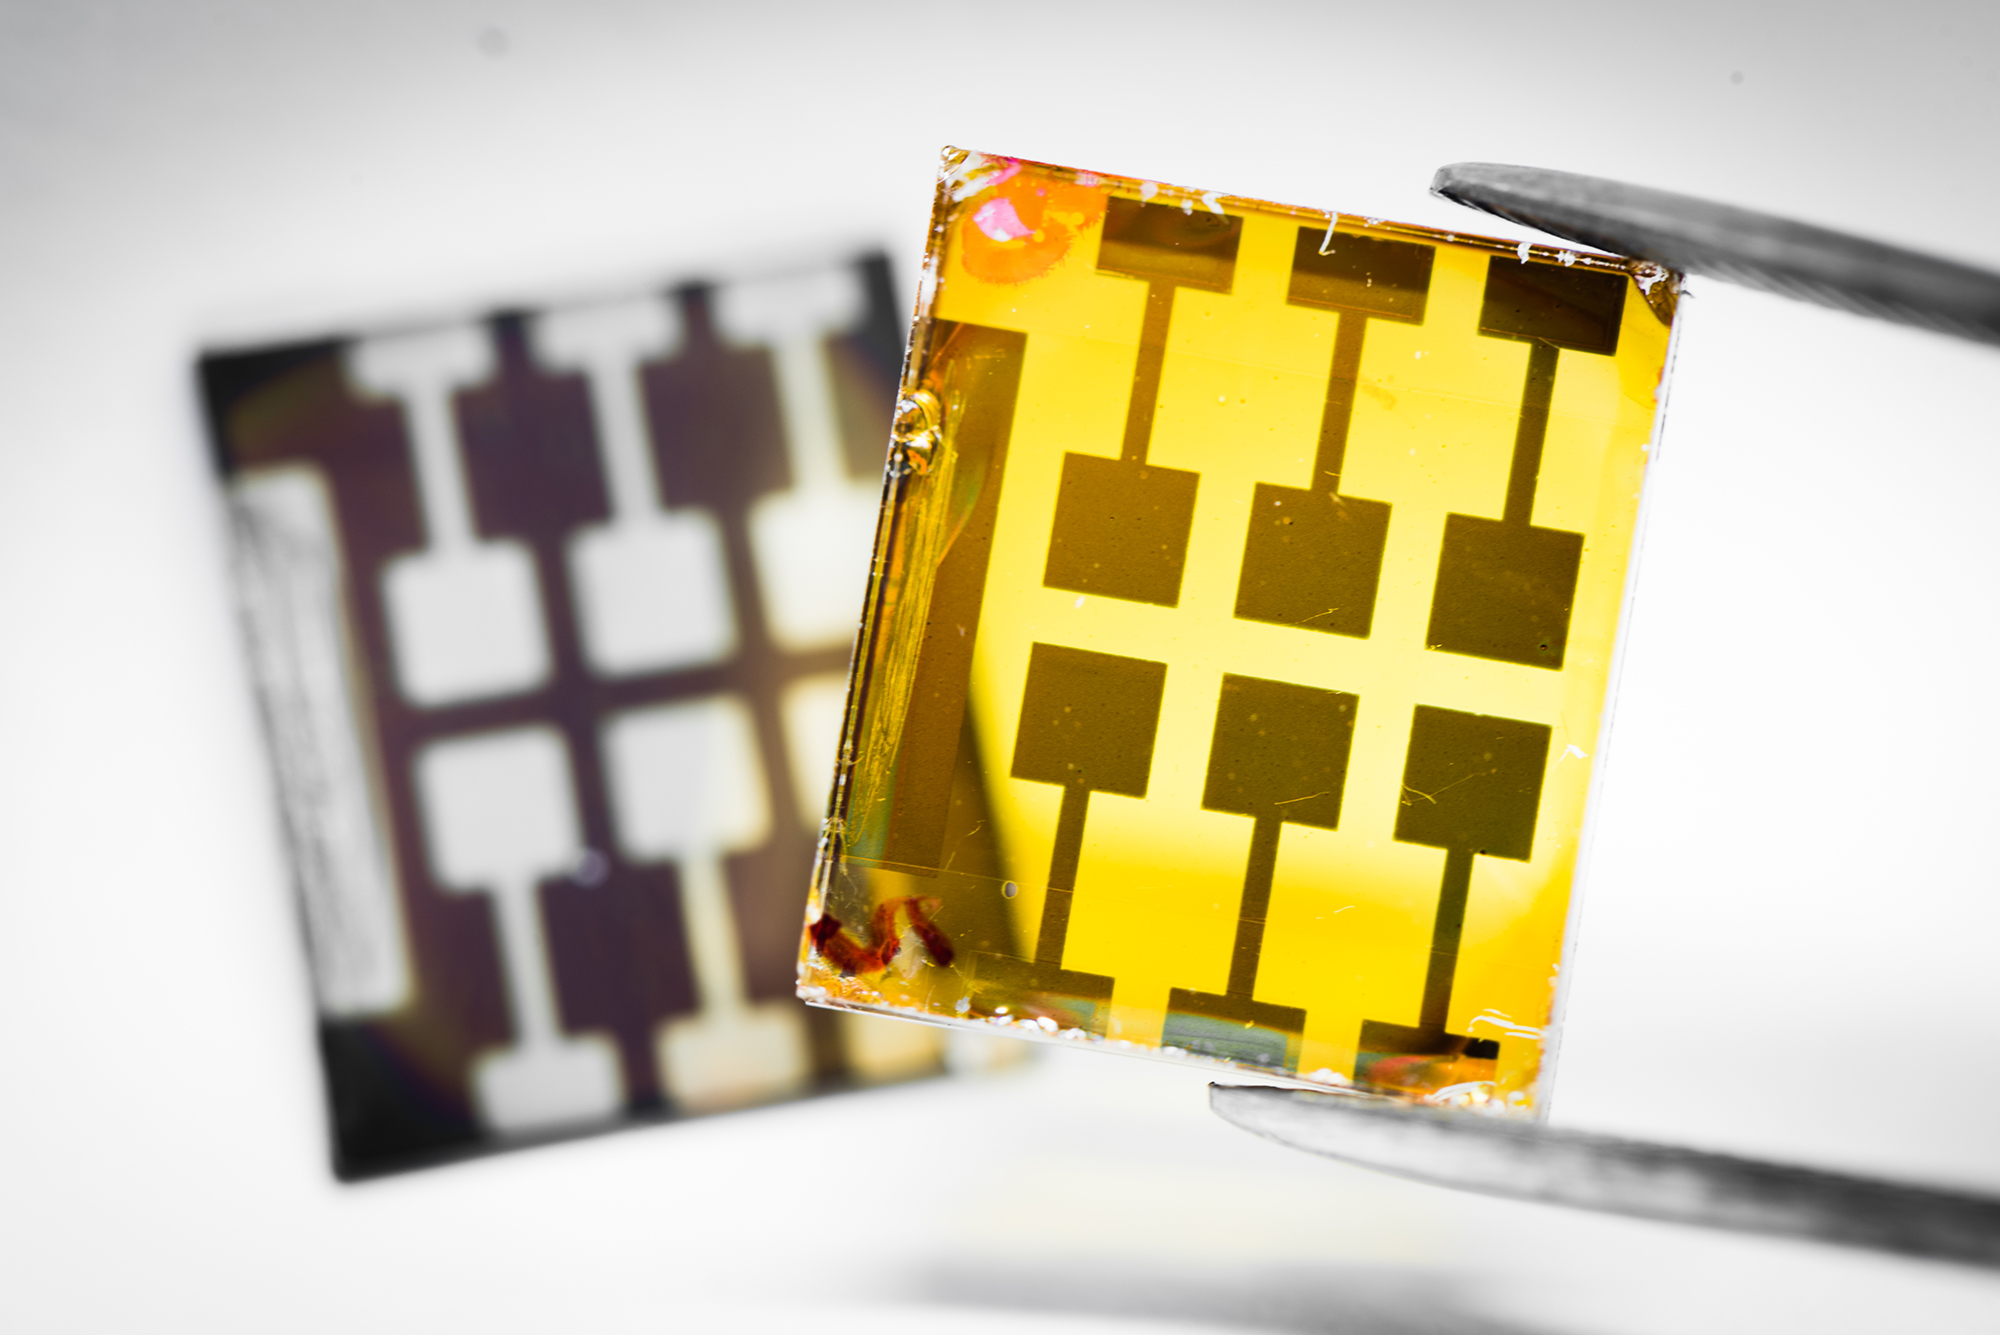 The yellow solar cell in the foreground is the lead-free variant of double perovskit while the dark in the background contains lead. The next step is to change the color to darken and thus absorb more sunlight.